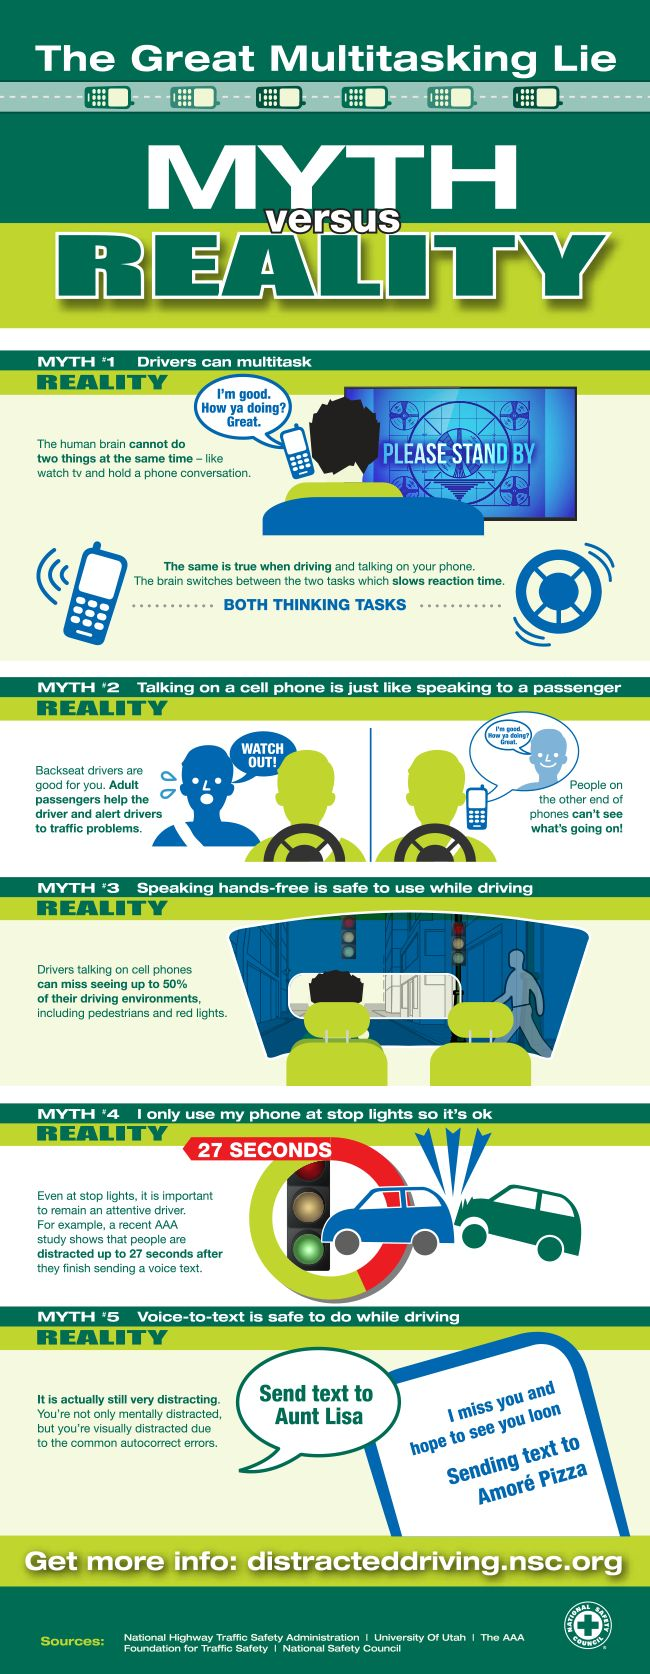 The Great Multitasking Lie Distracted driving